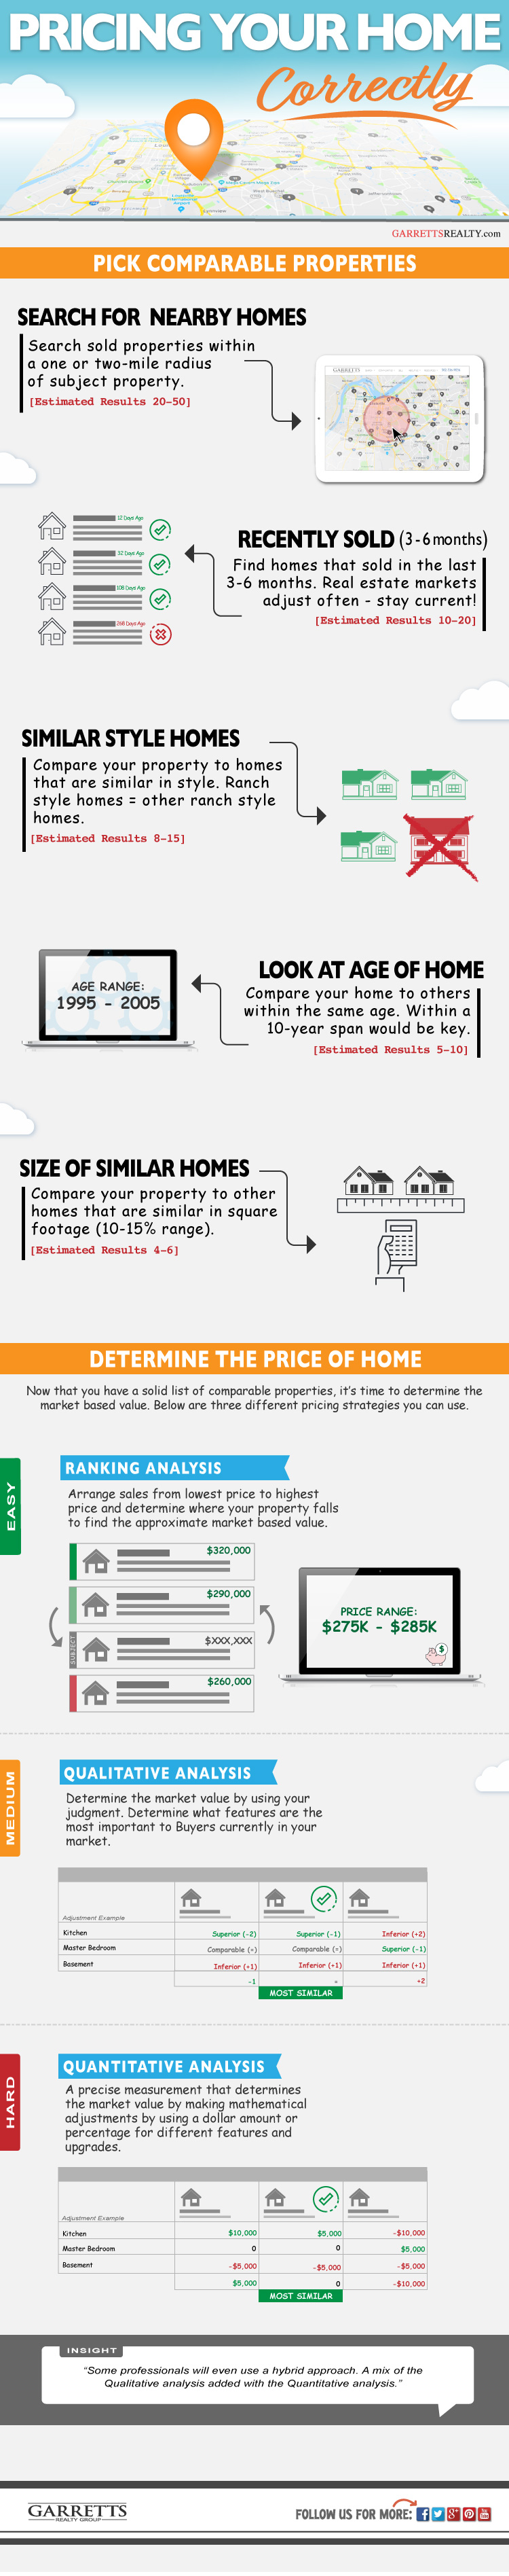 Step by step guide to pricing a home - Infographic